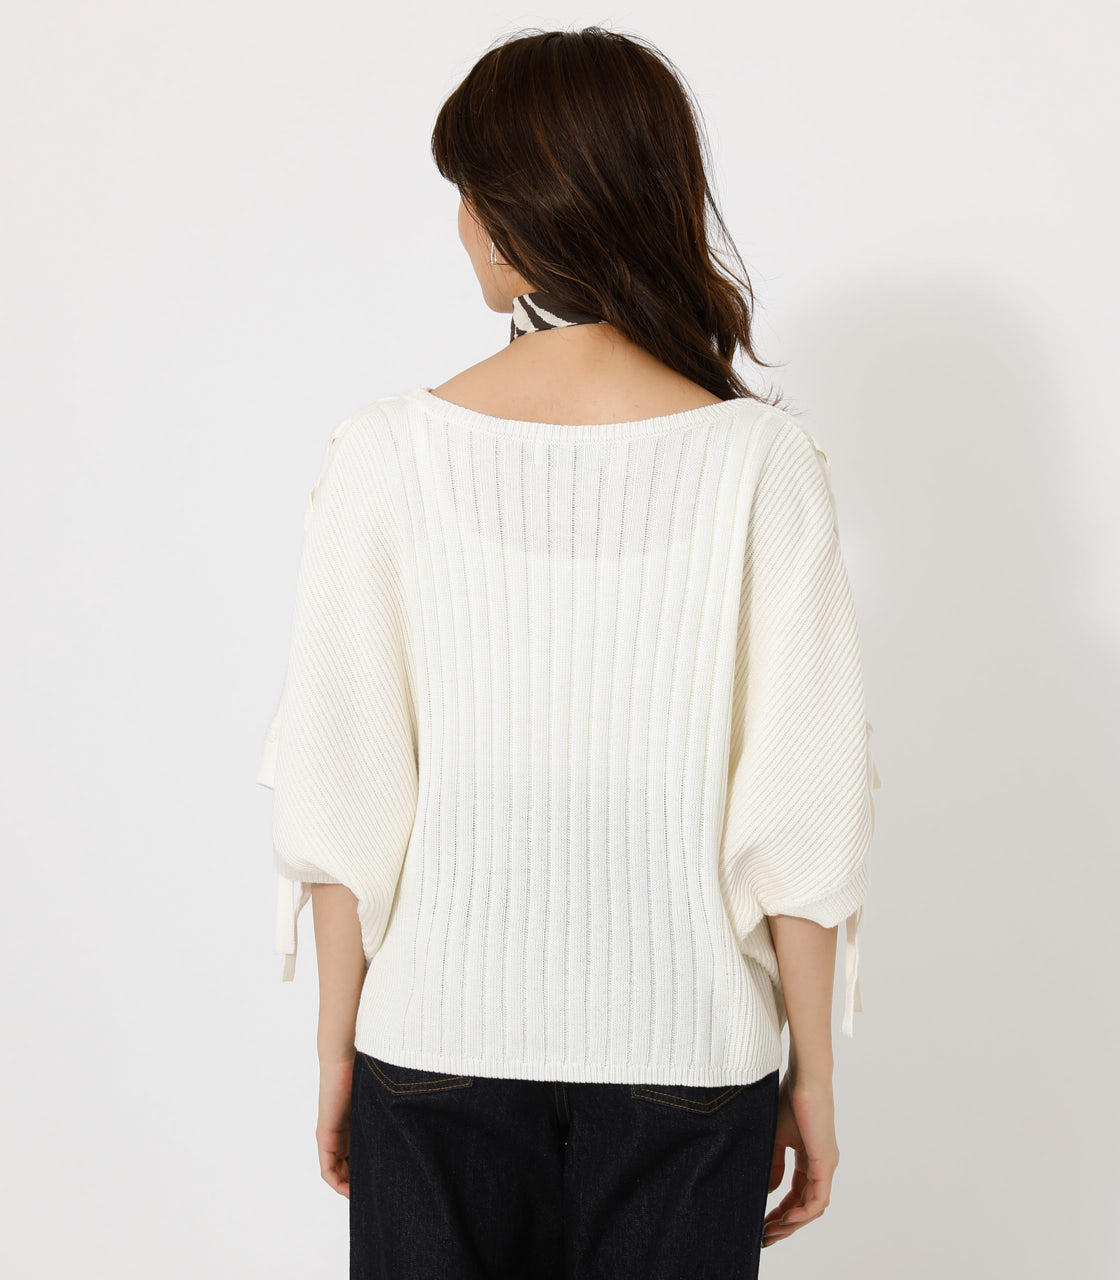 2WAY SHOULDER LACE-UP KNIT/2WAYショルダーレースアップニット 詳細画像 O/WHT 6